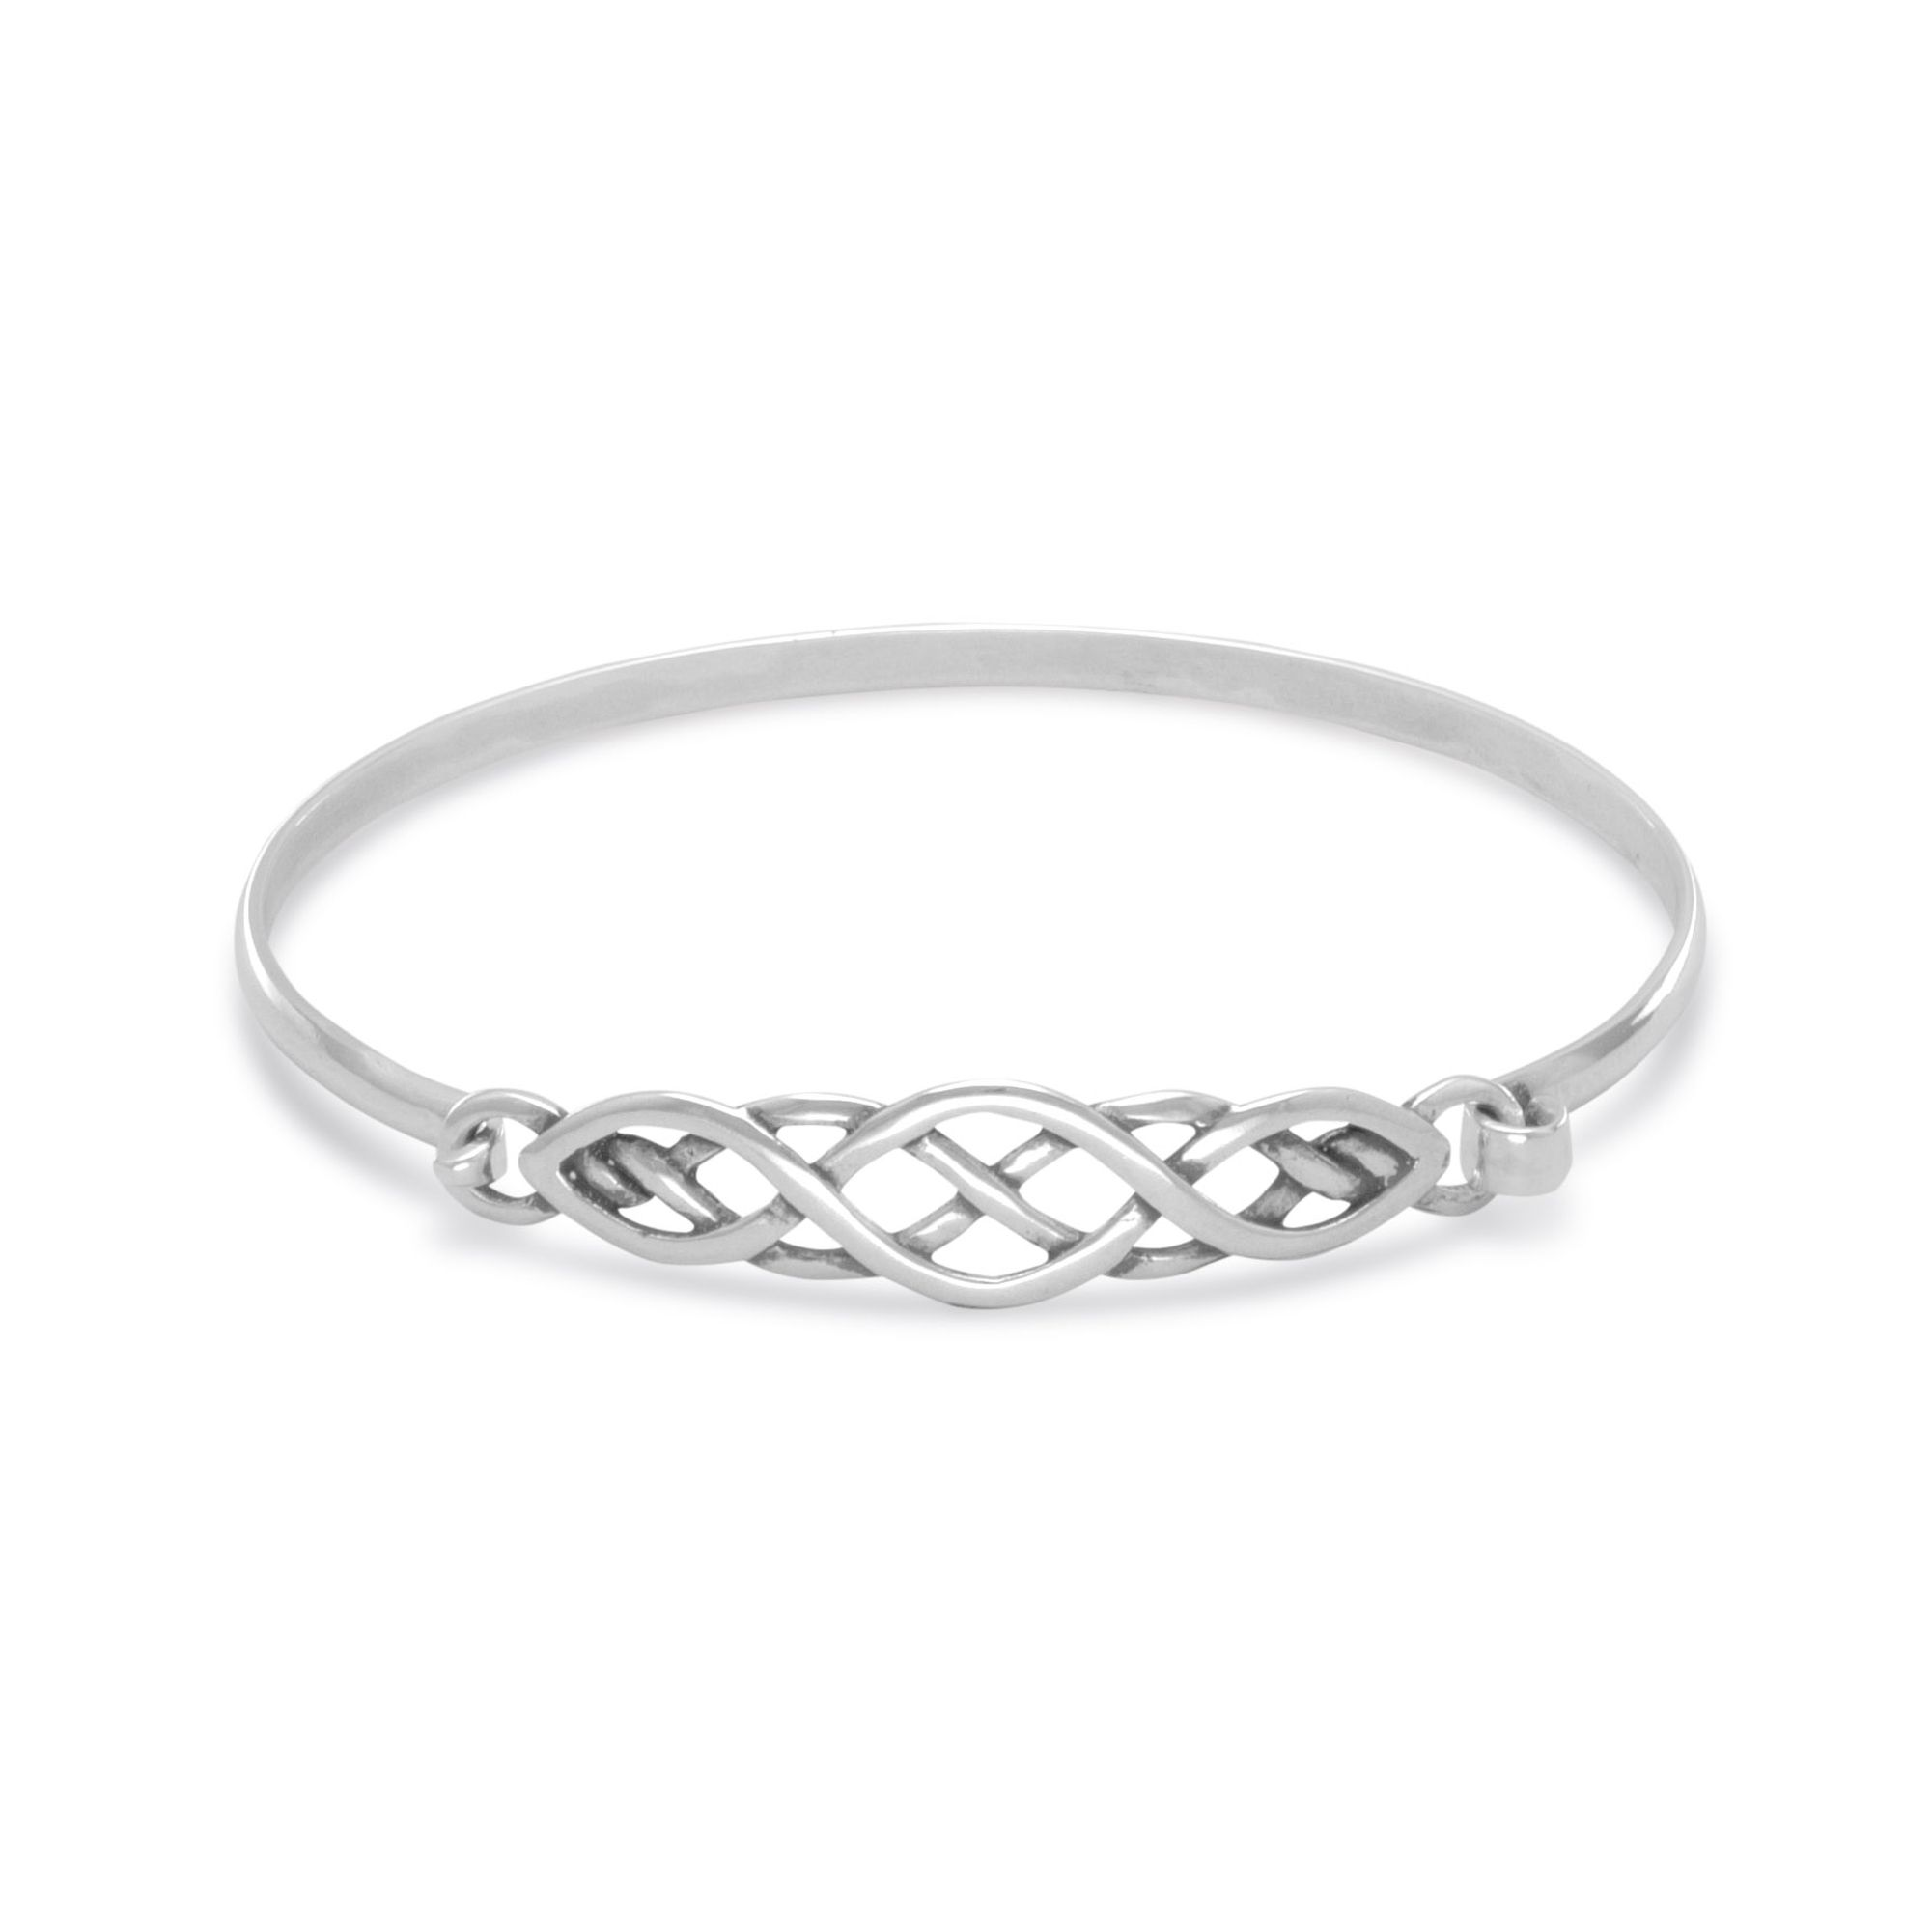 round steel unisex gifts loralyn silver women jewelry for bangle large girls designs stainless bracelets and teen wire men cuff bangles braided bracelet unique